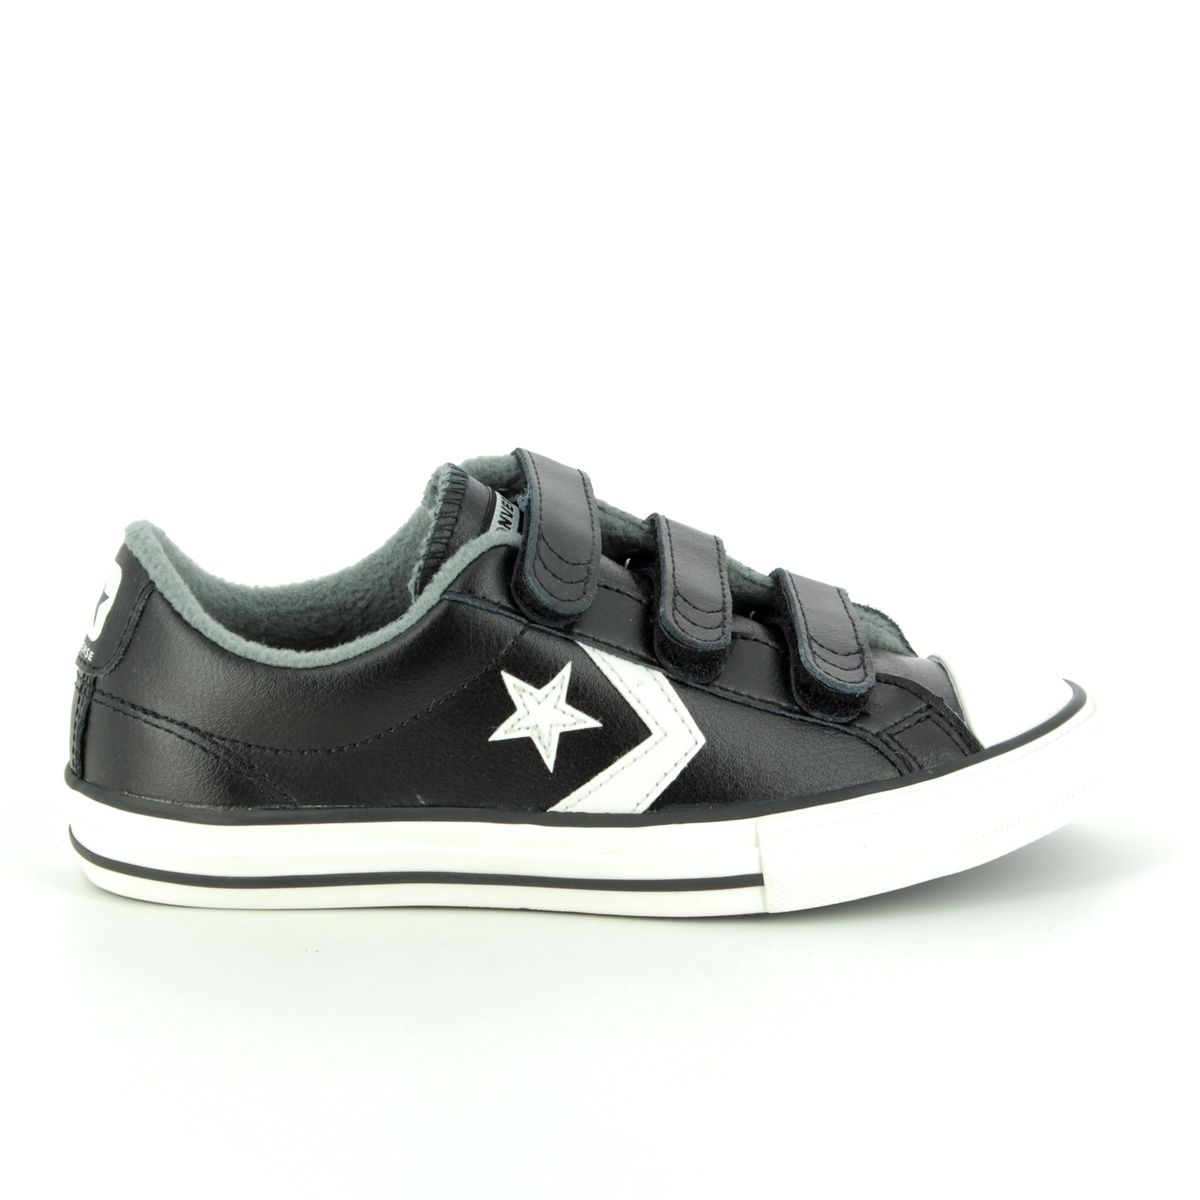 Converse Trainers - Black leather - 661936C STAR PLAYER VELCRO f22650171